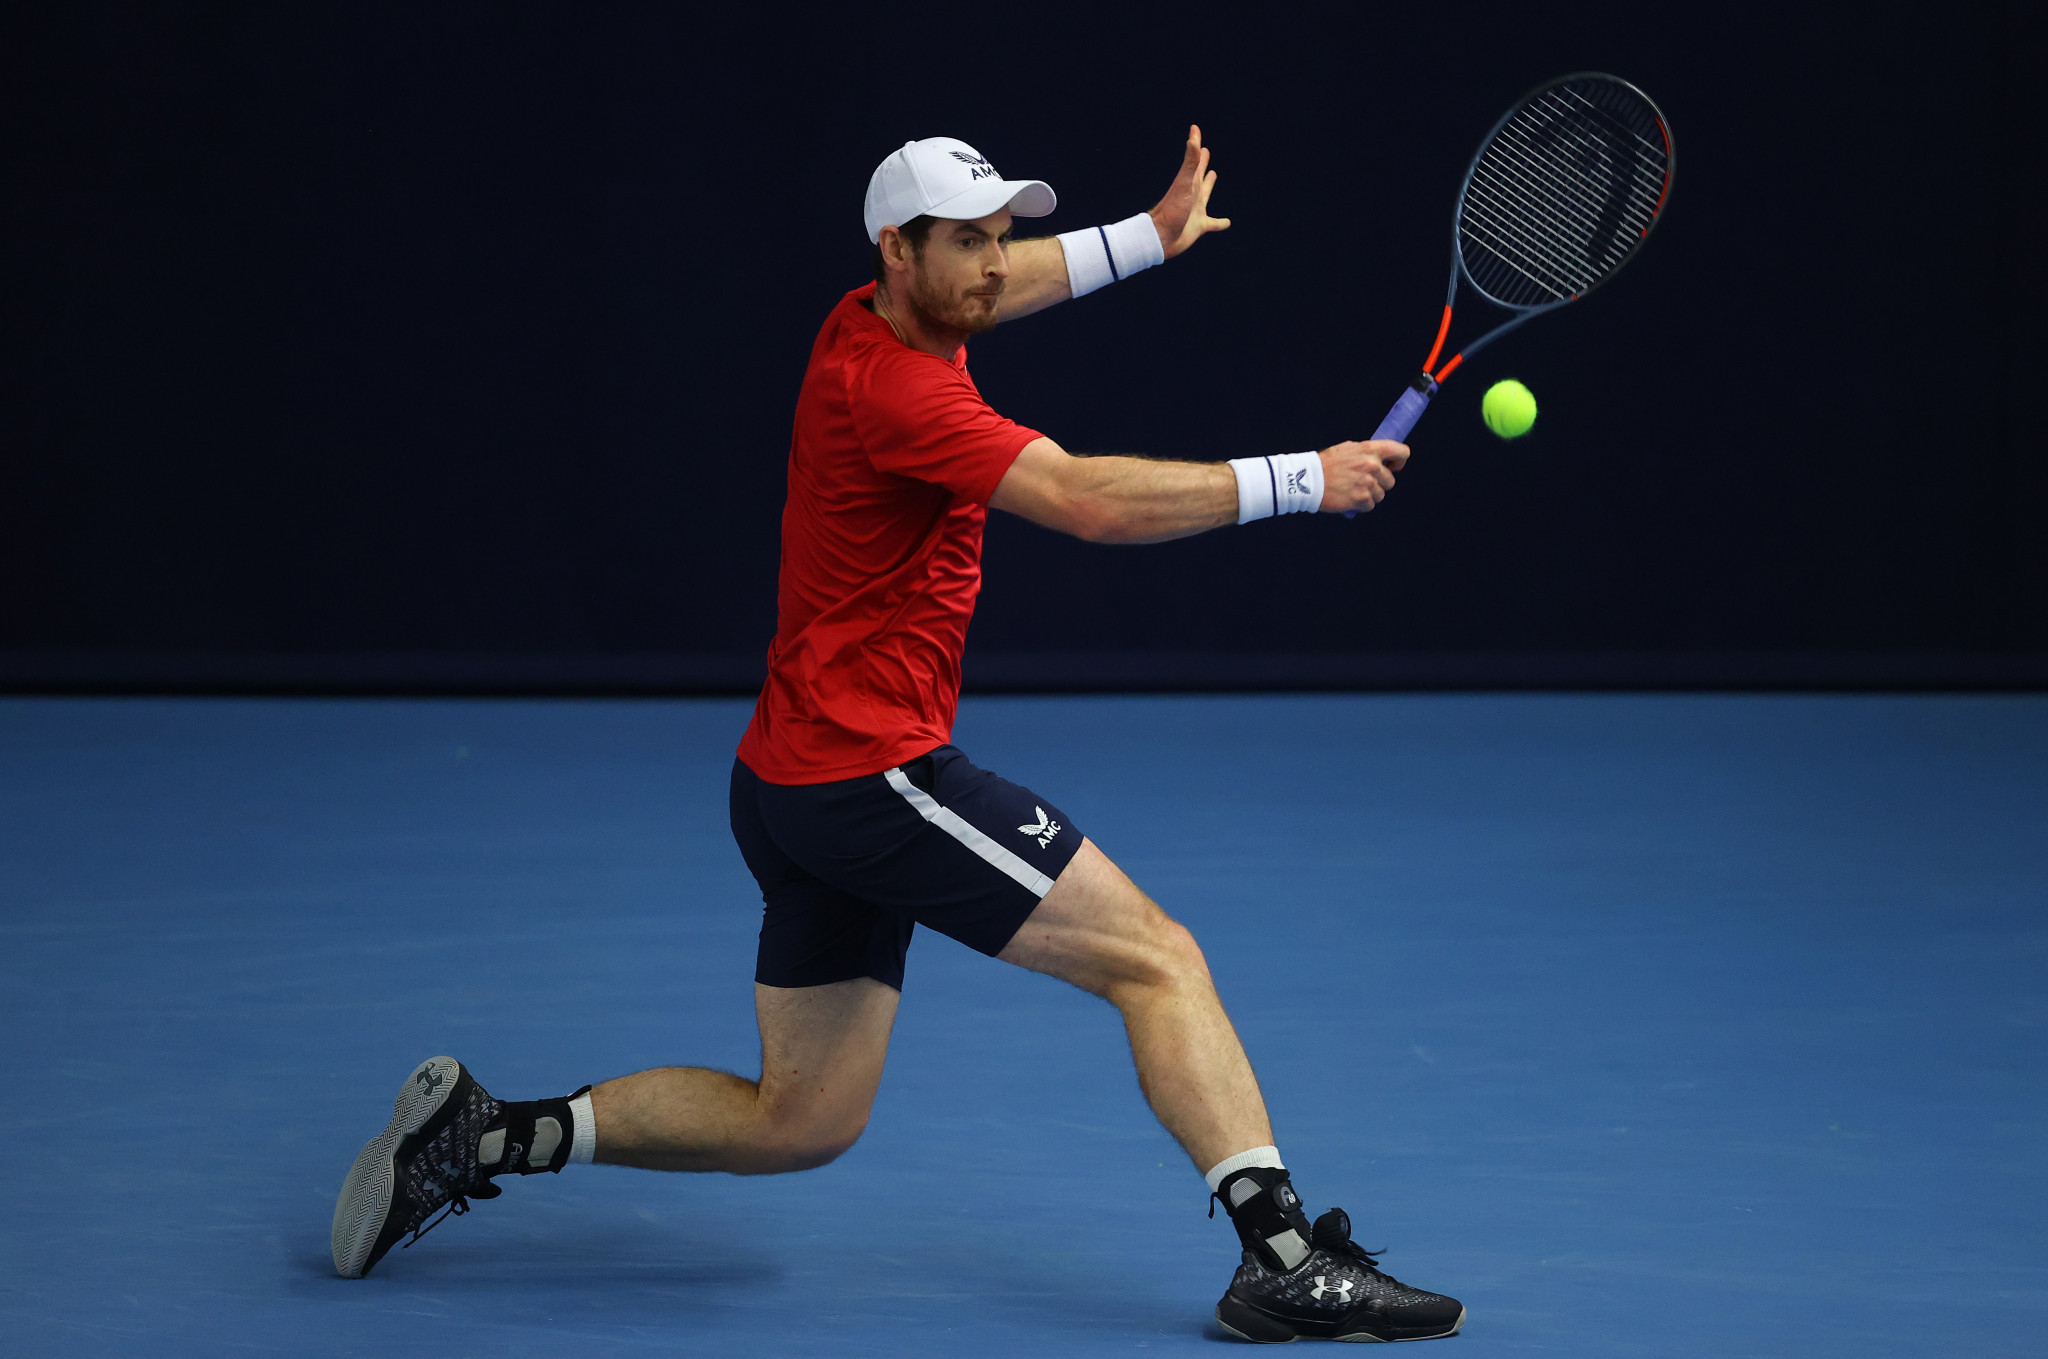 Murray tests positive for COVID-19 ahead of Australian Open